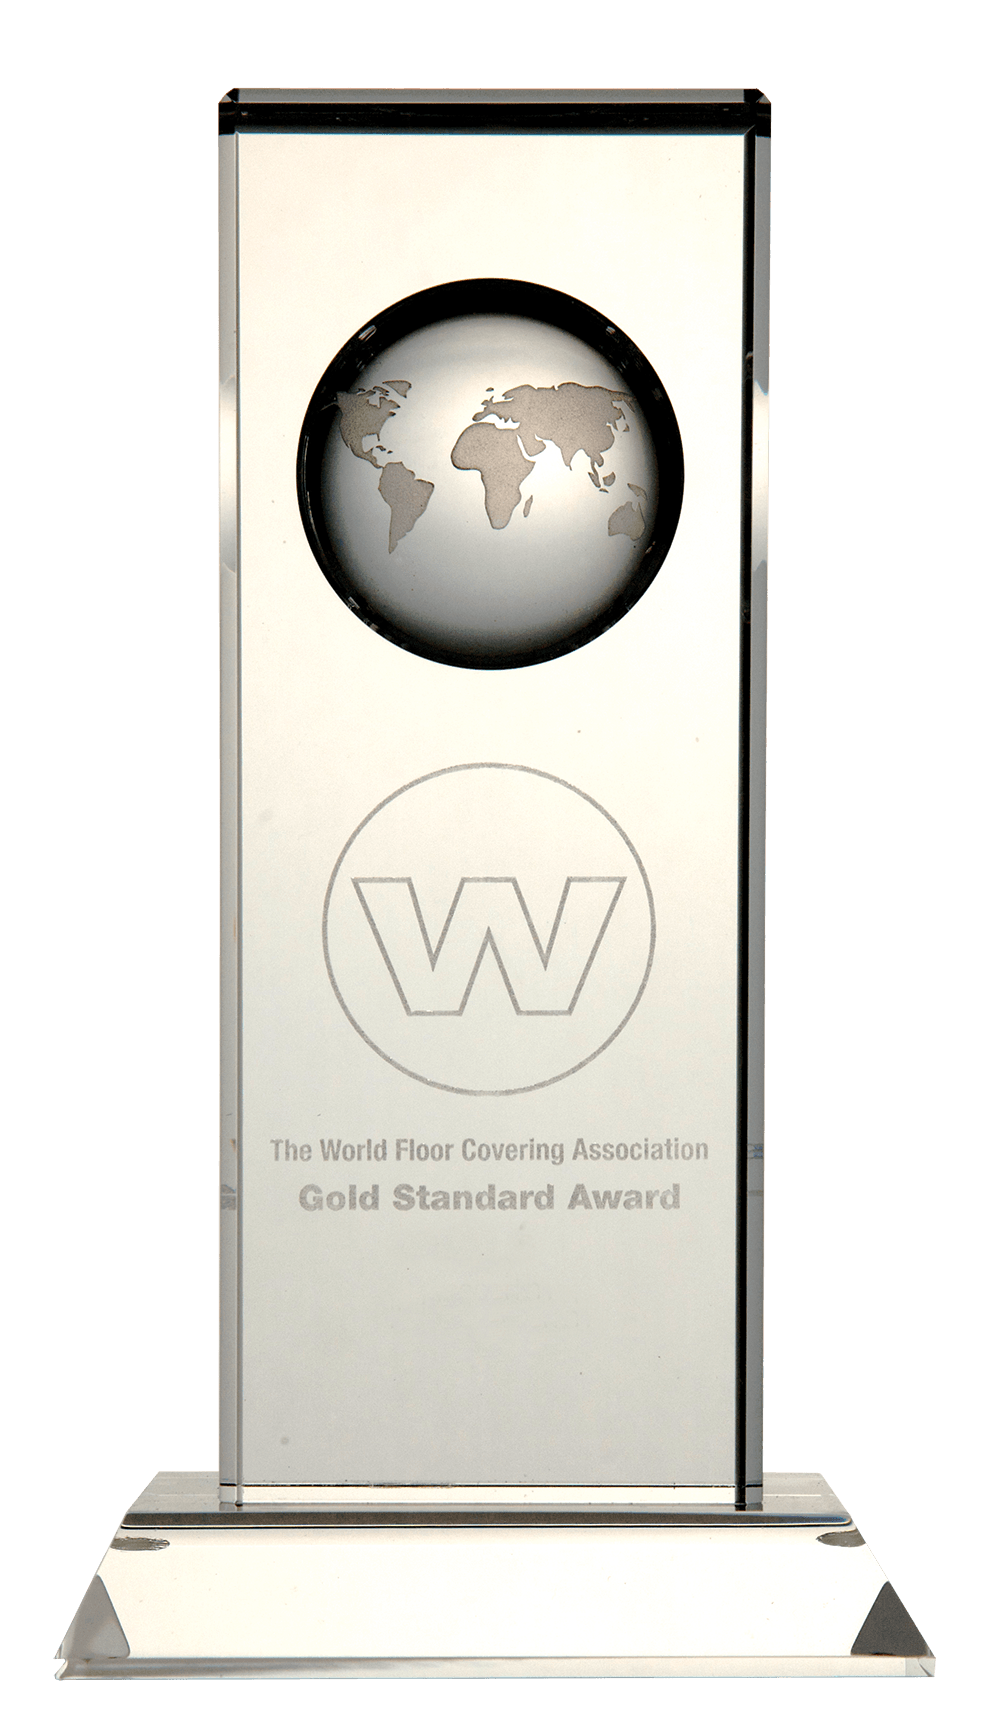 ... World Floor Covering Association. Guidelines For Nomination  Eligibility. Member In Good Standing Of The WFCA ...